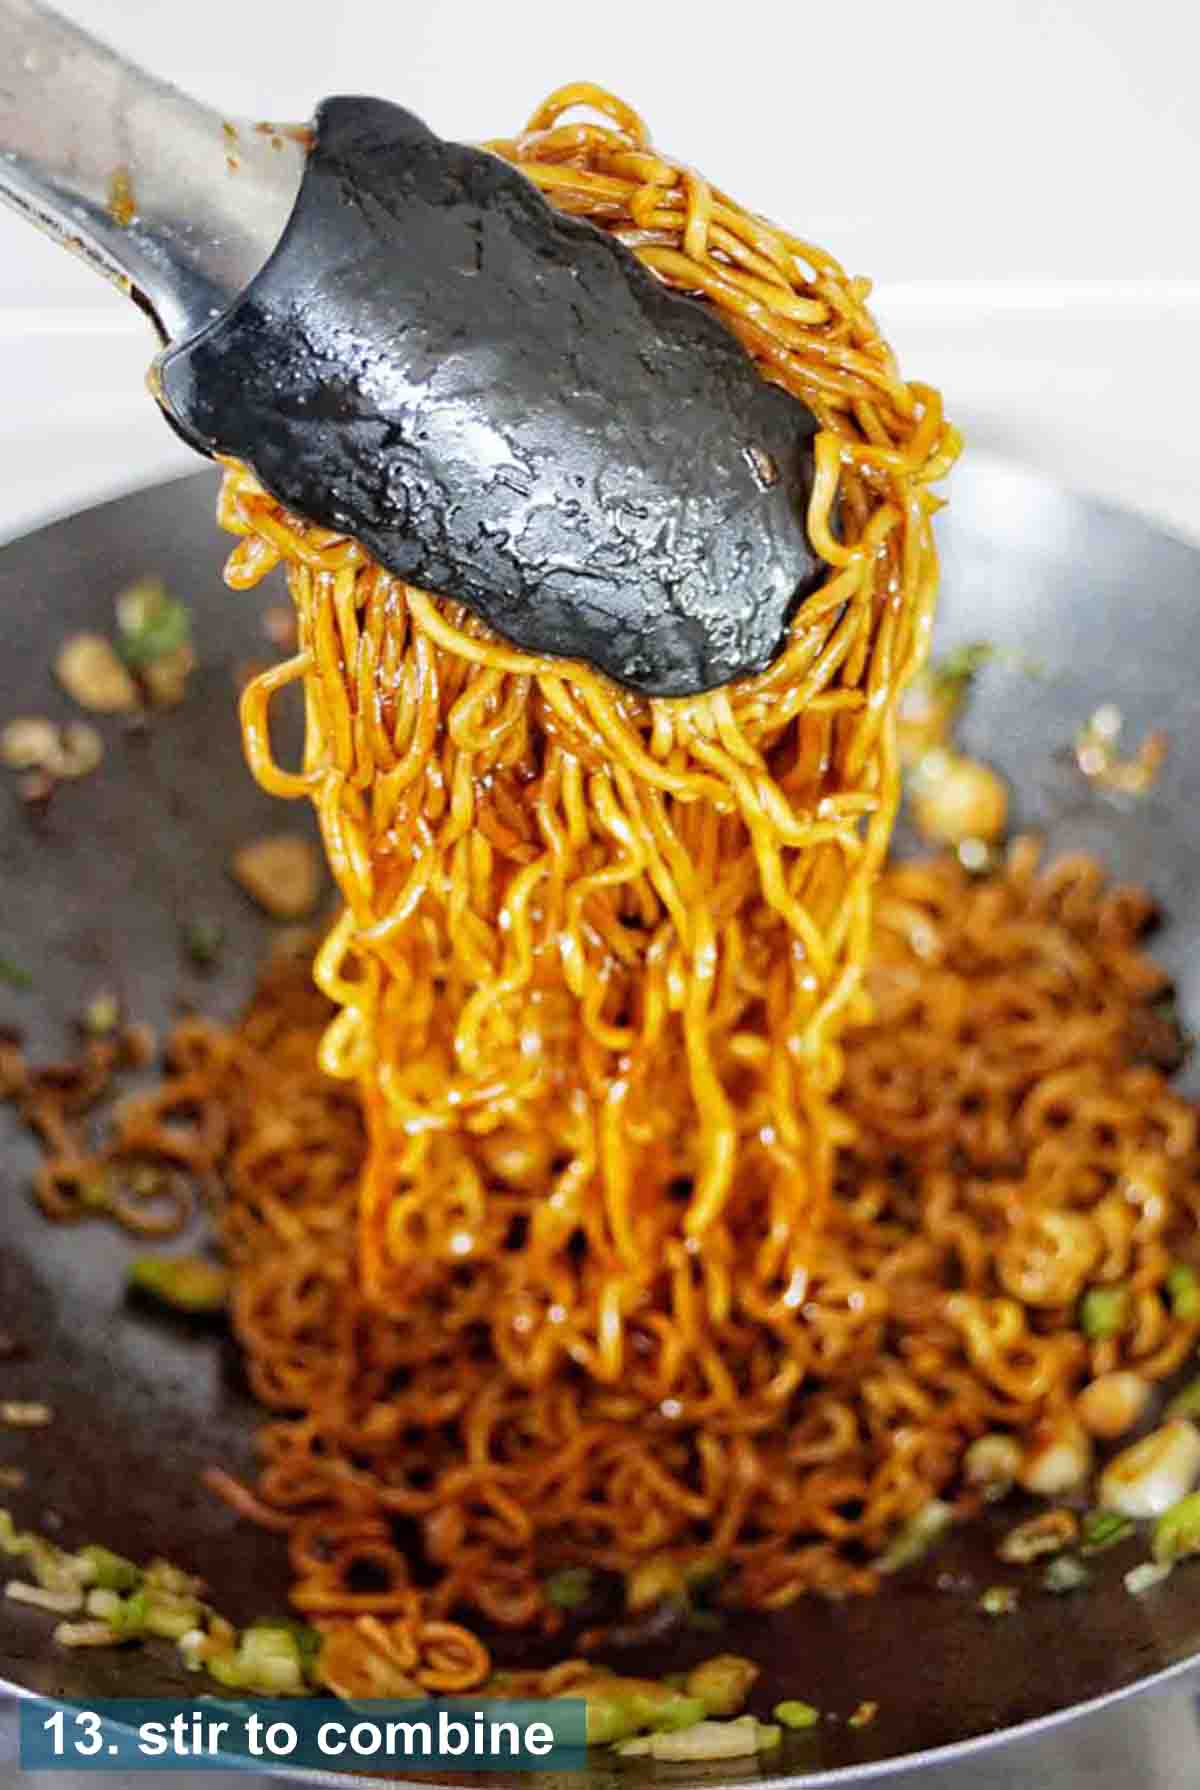 Tongs holding noodles above a wok of the same